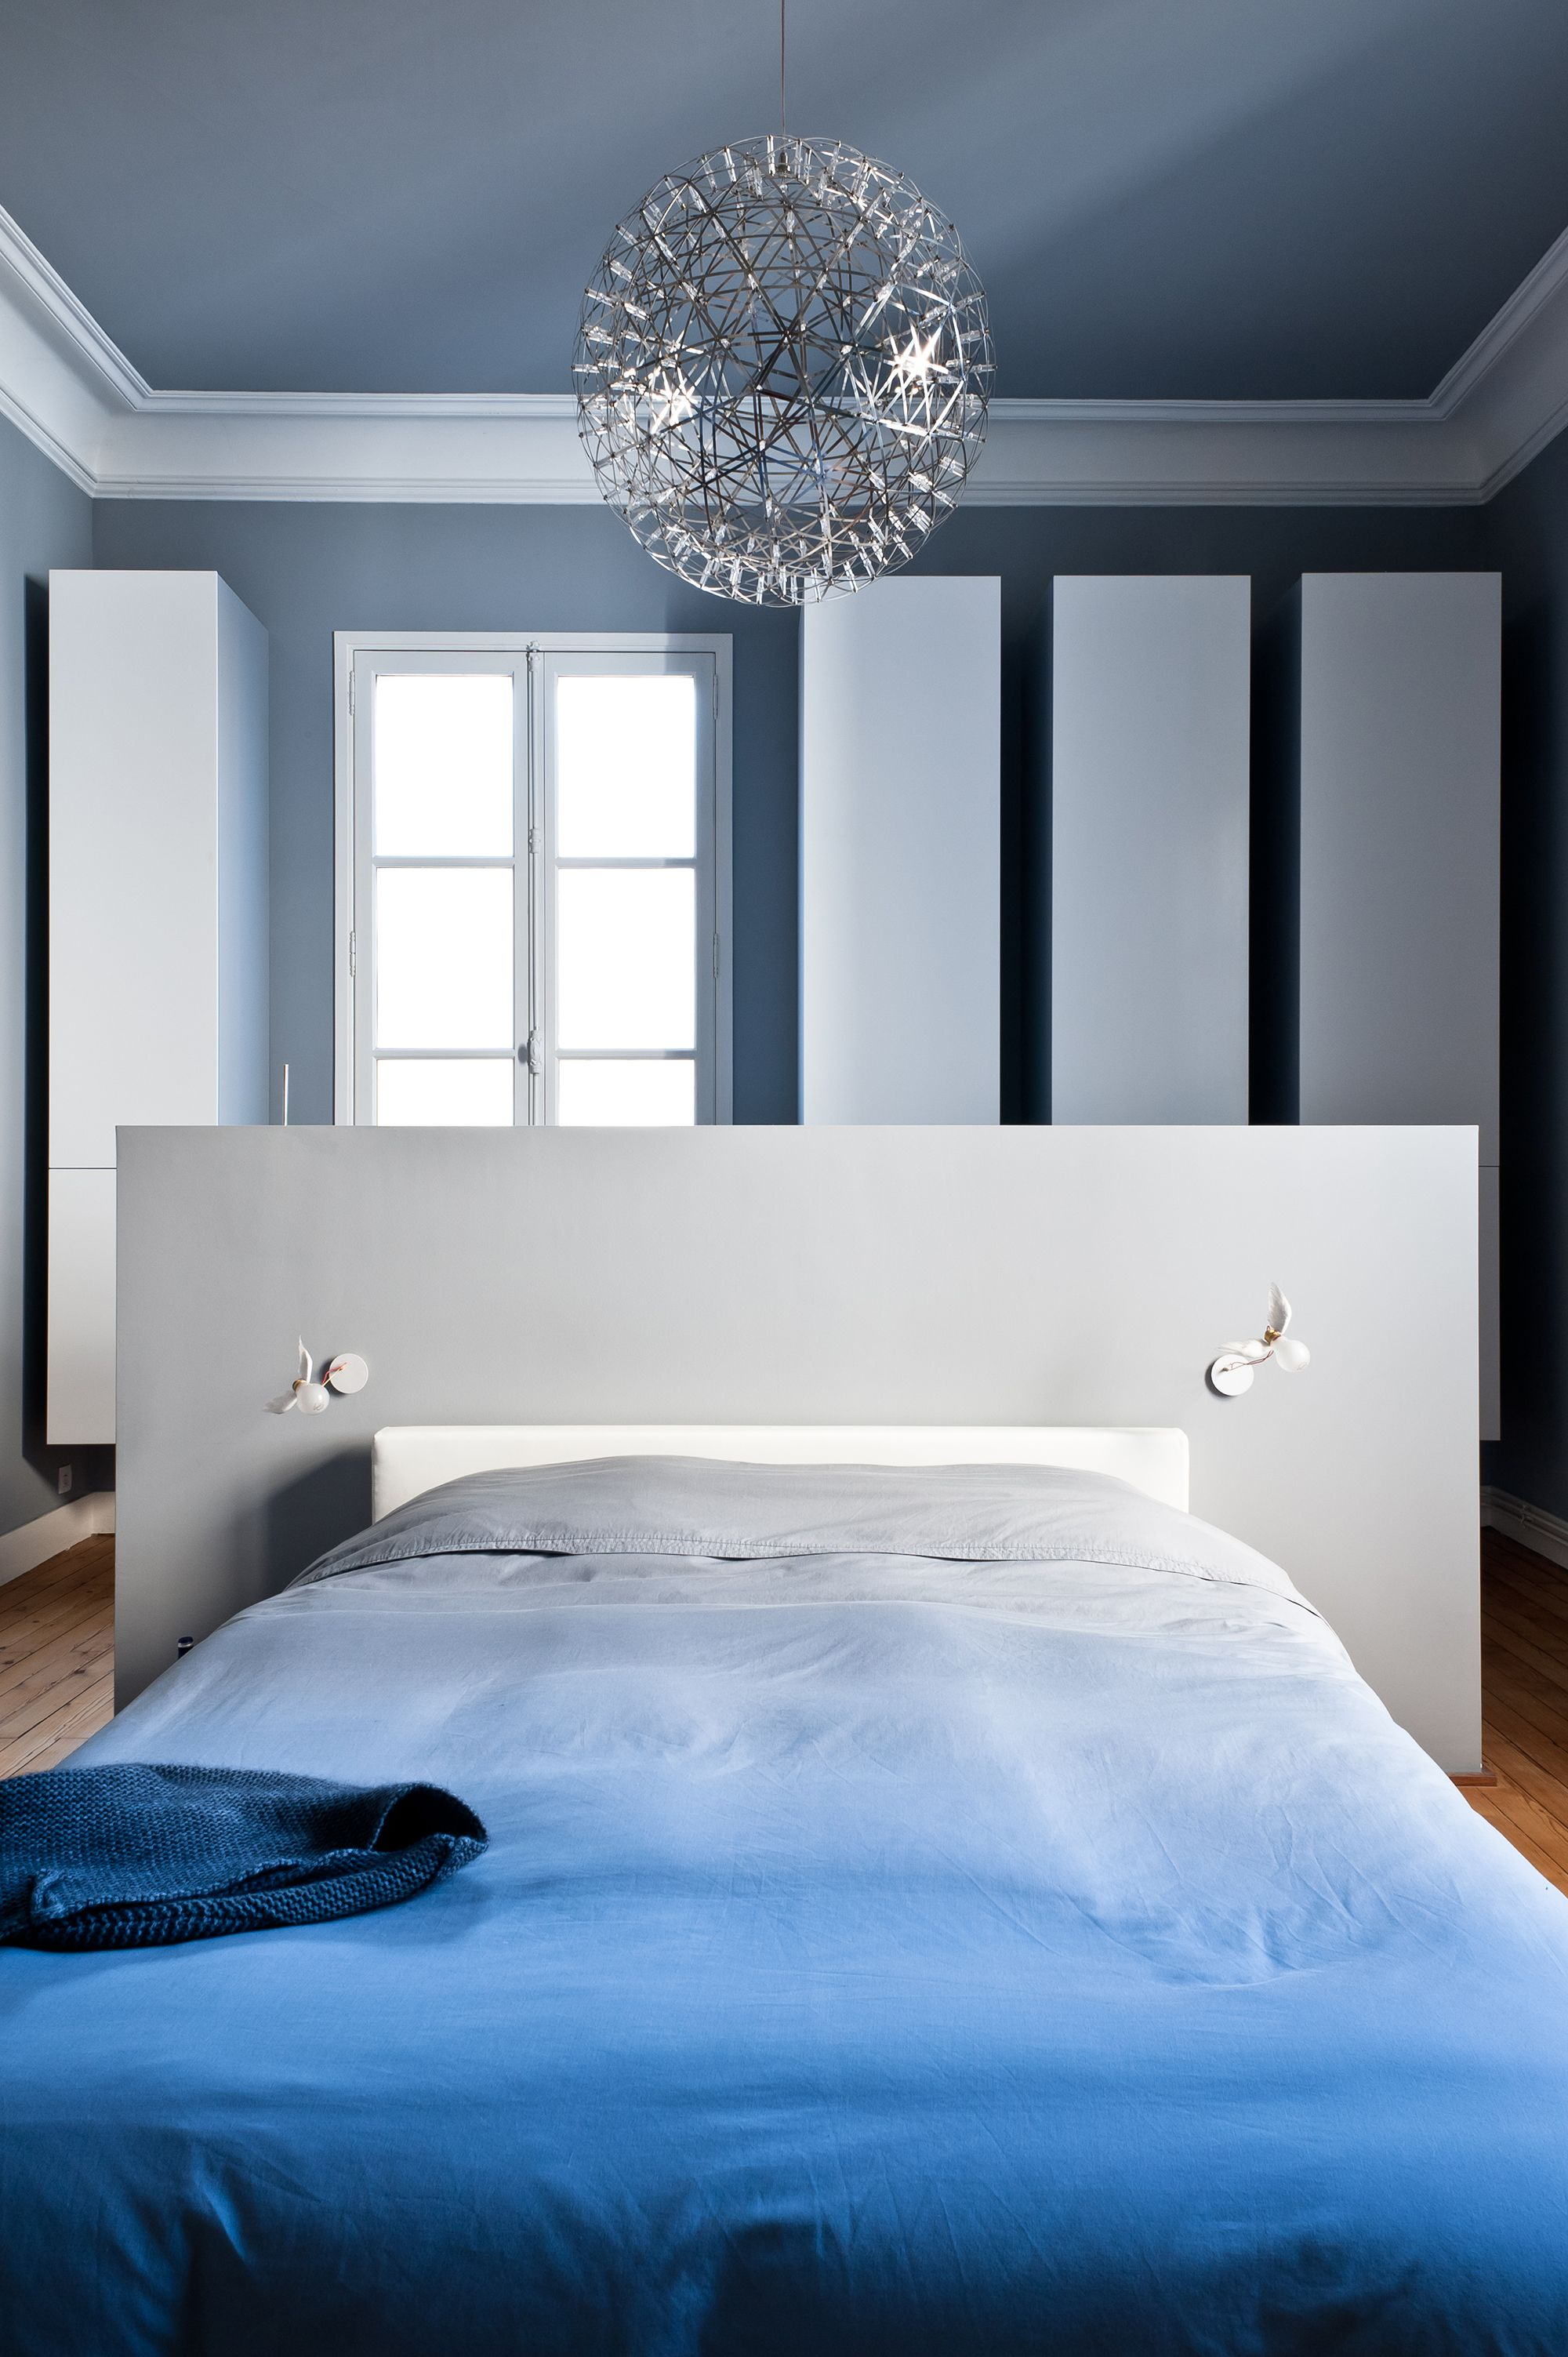 chambre bleue et blanche avec ornements anciens r am nag e dans appartement haussmannien. Black Bedroom Furniture Sets. Home Design Ideas